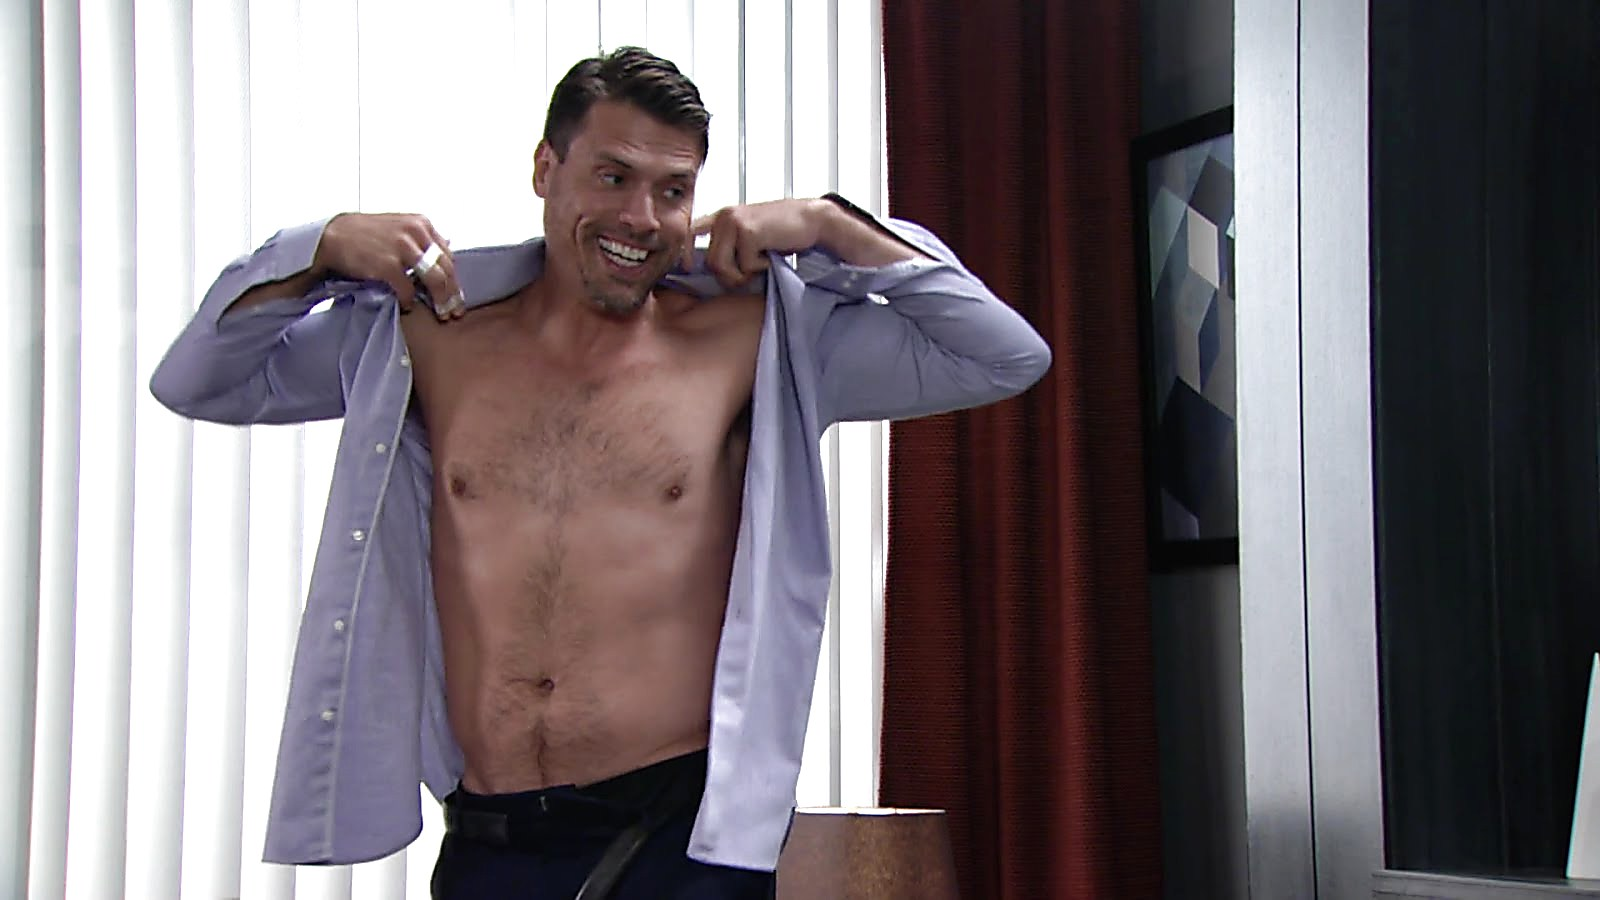 Joshua Morrow sexy shirtless scene November 8, 2018, 12pm